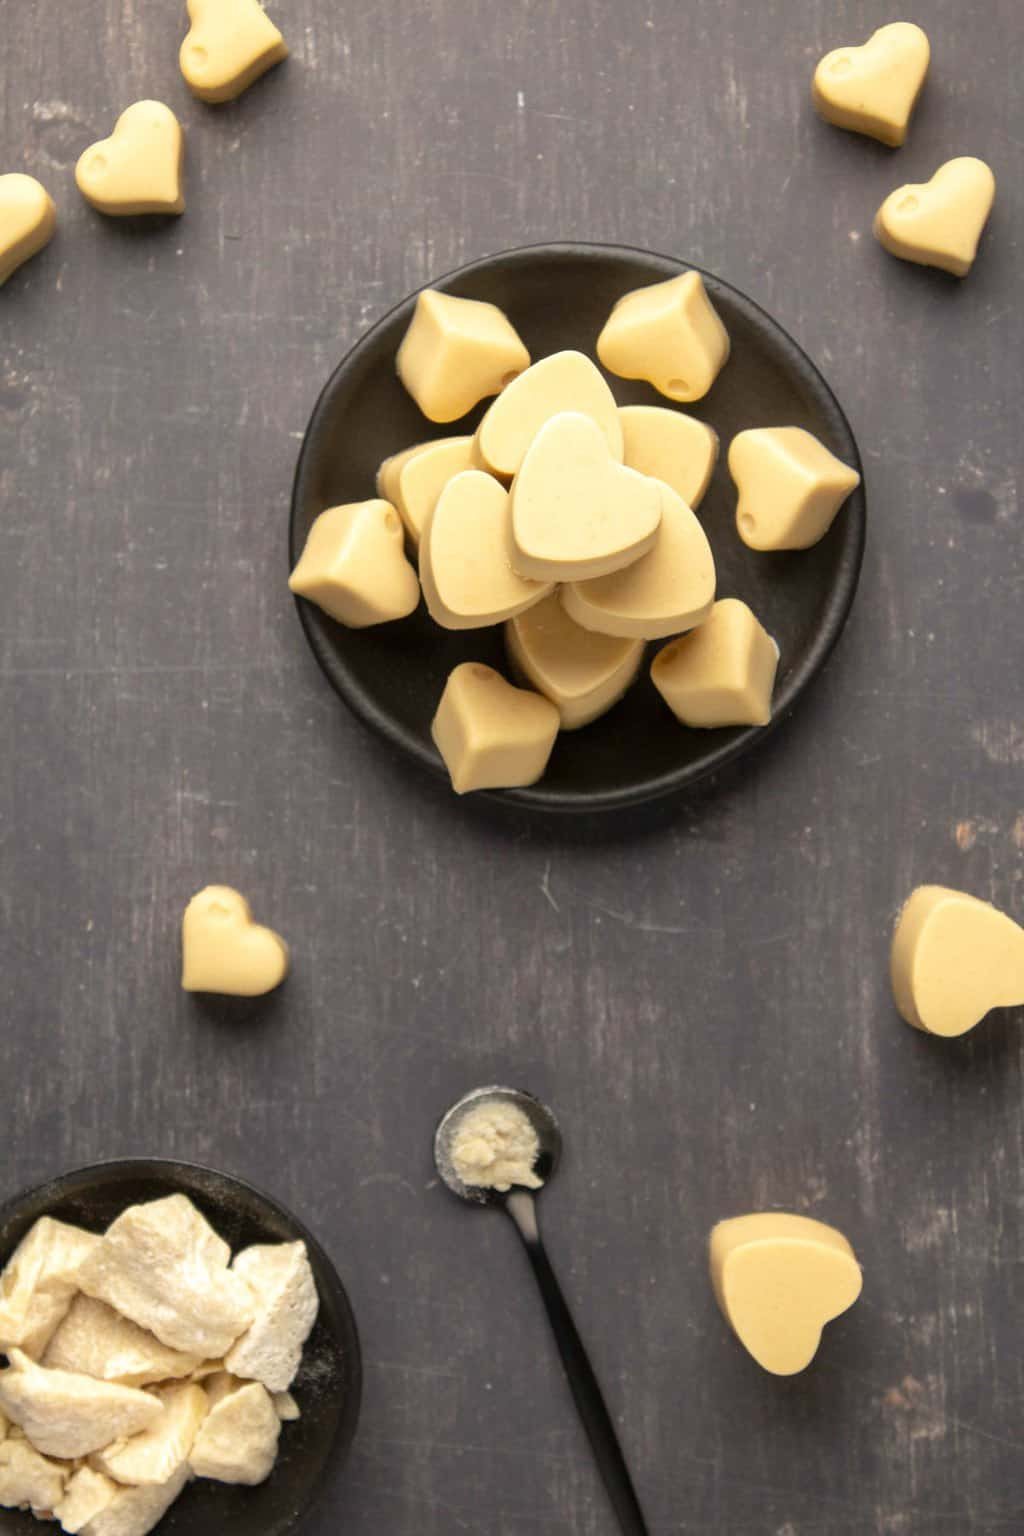 Heart shaped vegan white chocolate stacked up on a black plate.